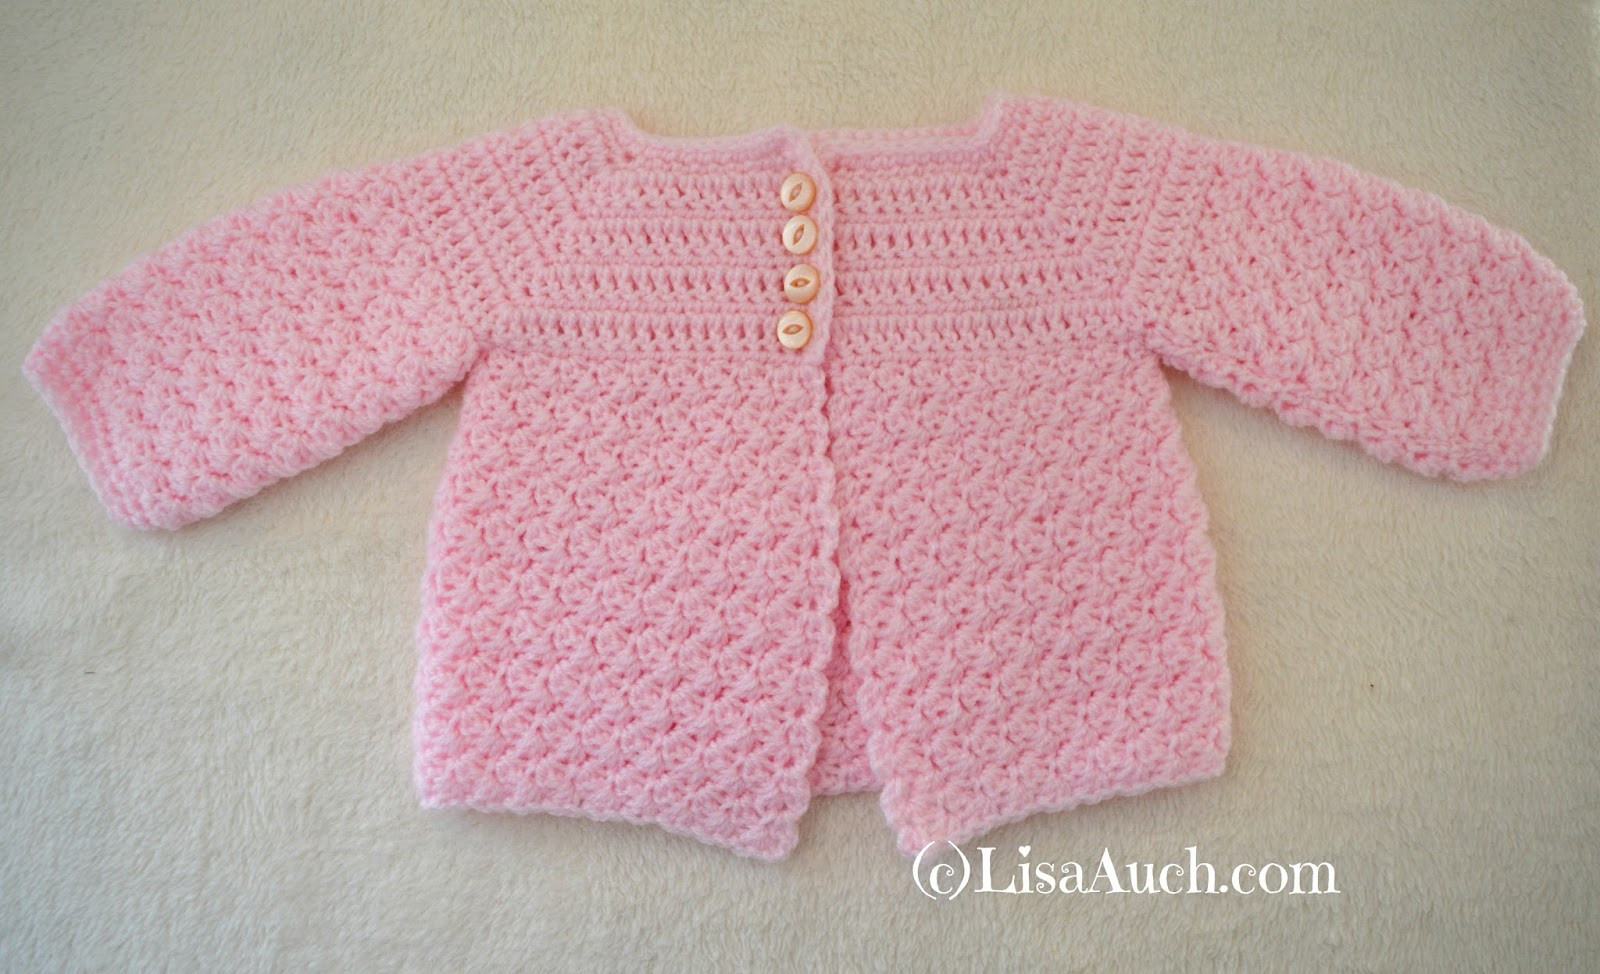 Crochet Baby Cardigan Pattern Luxury Crochet Baby Cardigan Easy Free Pattern Of Luxury 44 Pictures Crochet Baby Cardigan Pattern